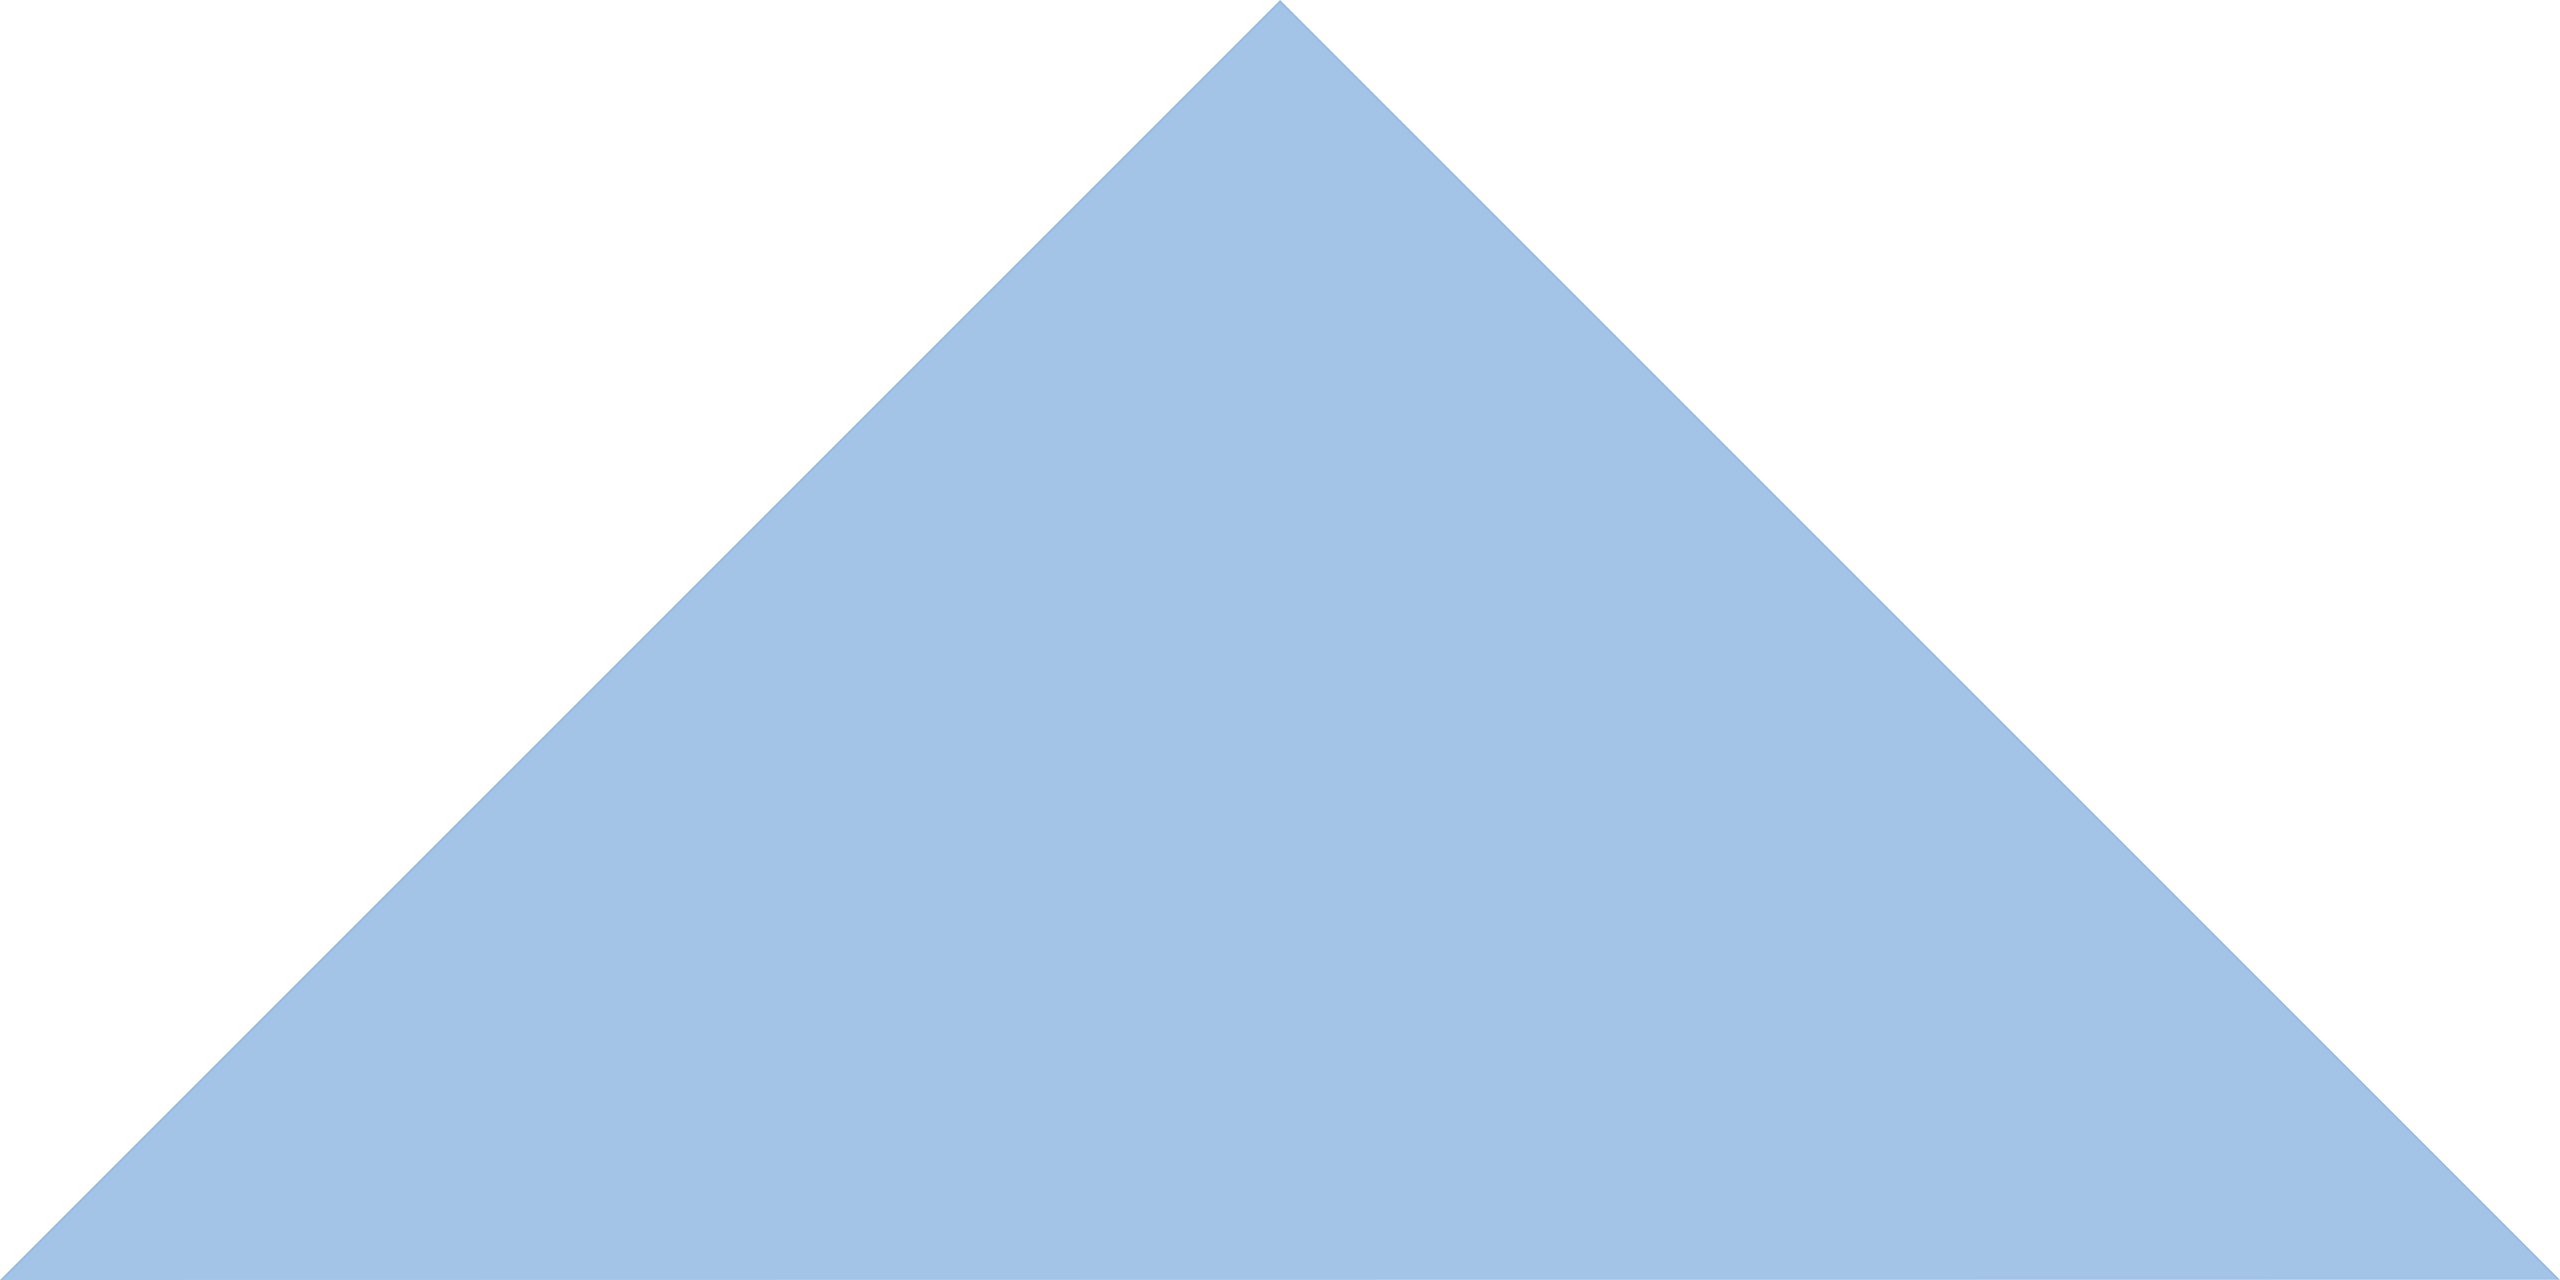 Powder Blue Small Triangle Wall Pattern - Set of 20 - Pattern Vinyl Wall Art Decal for Homes, Offices, Kids Rooms, Nurseries, Schools, High Schools, Colleges, Universities